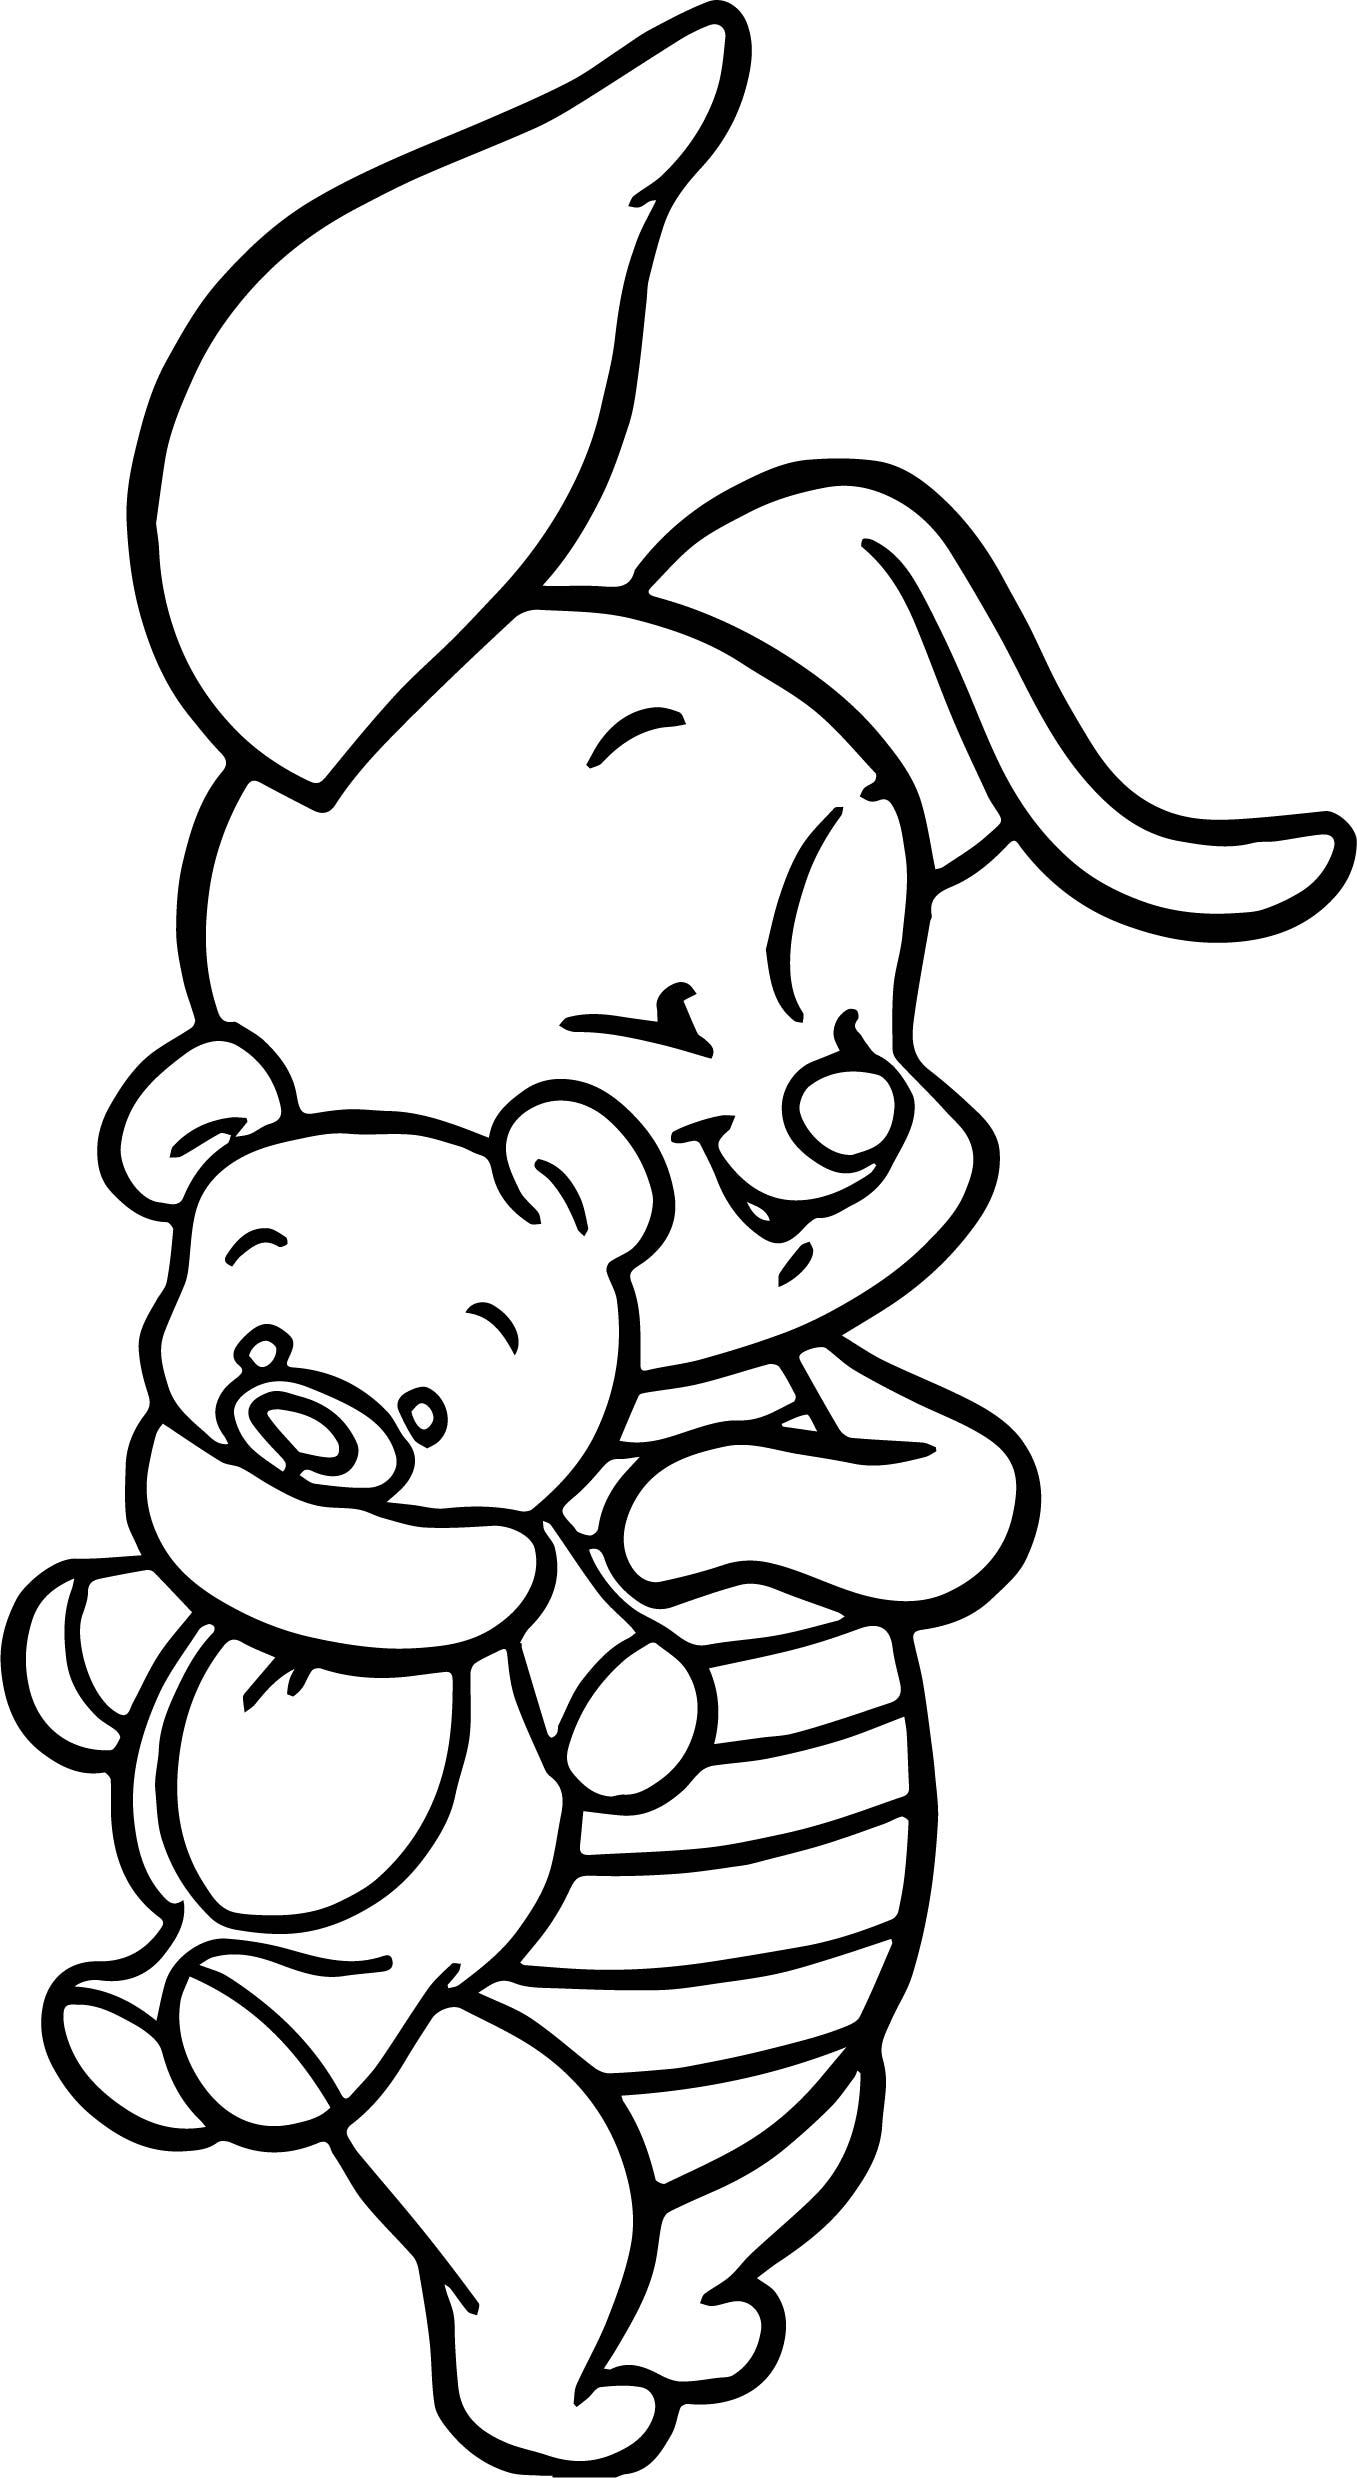 Cute Baby Winnie Cute Winnie The Pooh Coloring Pages Novocom Top